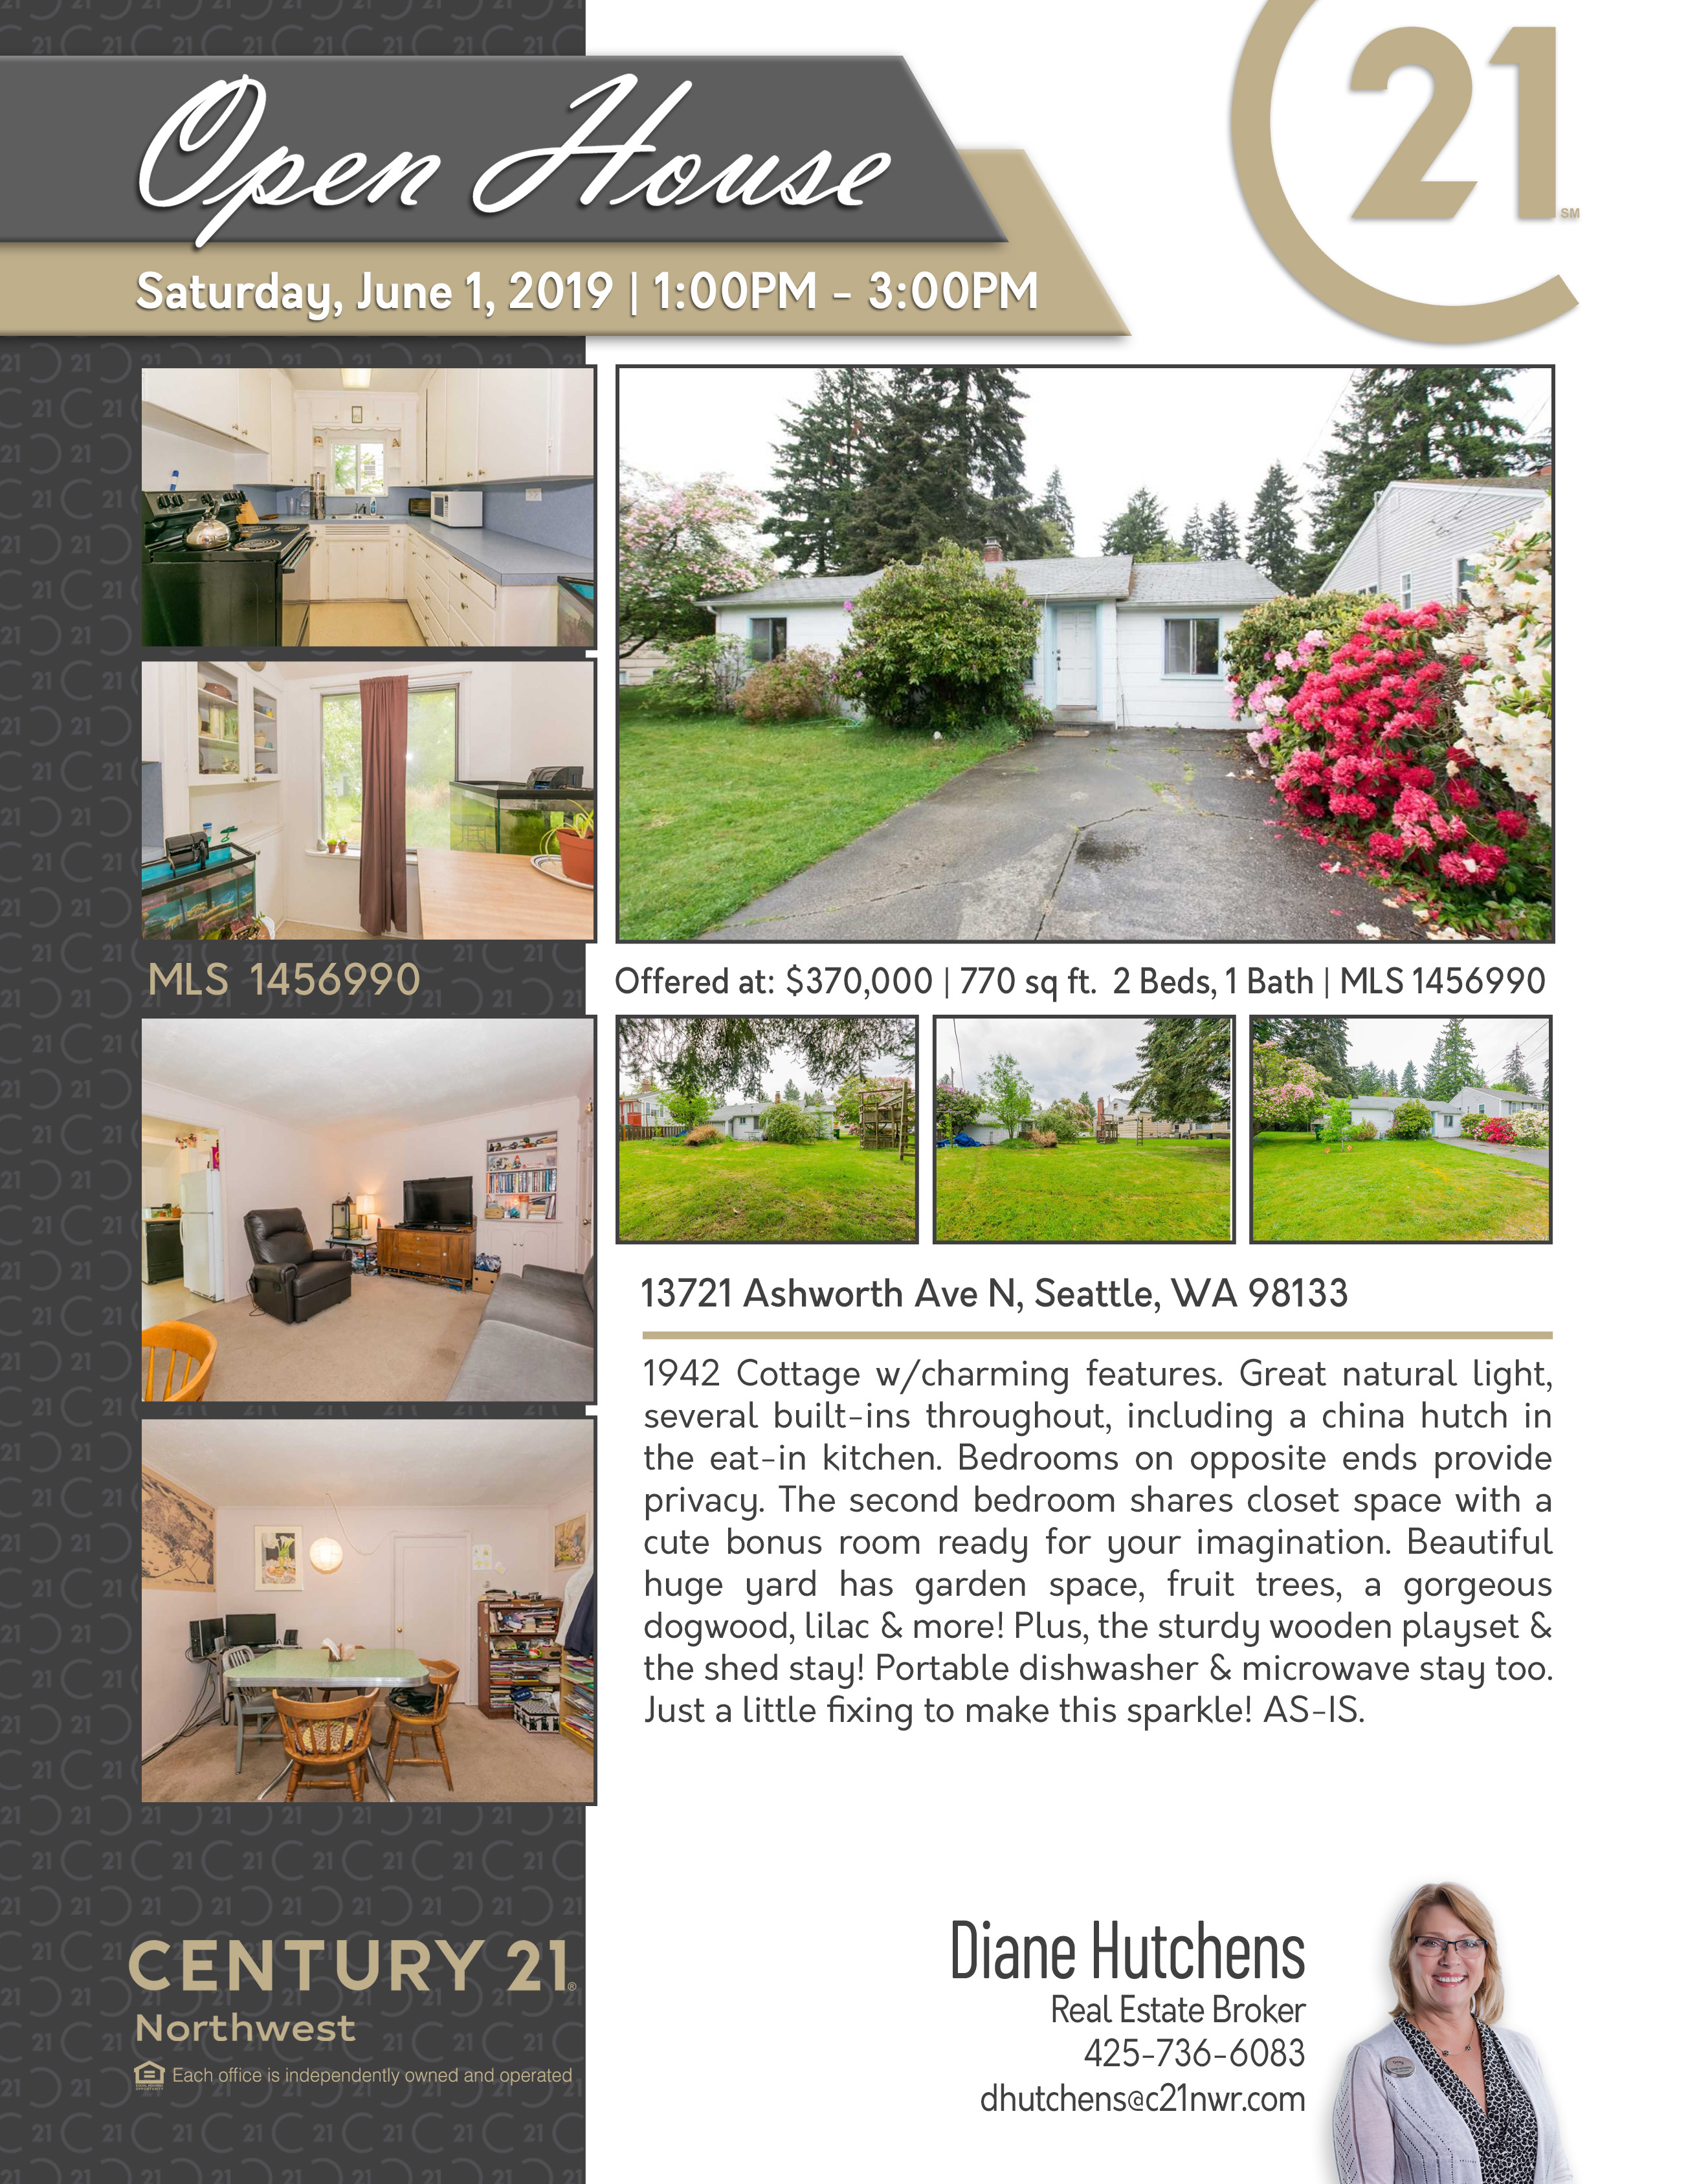 OPEN HOUSE by Century 21 Northwest Realty in Lake Stevens